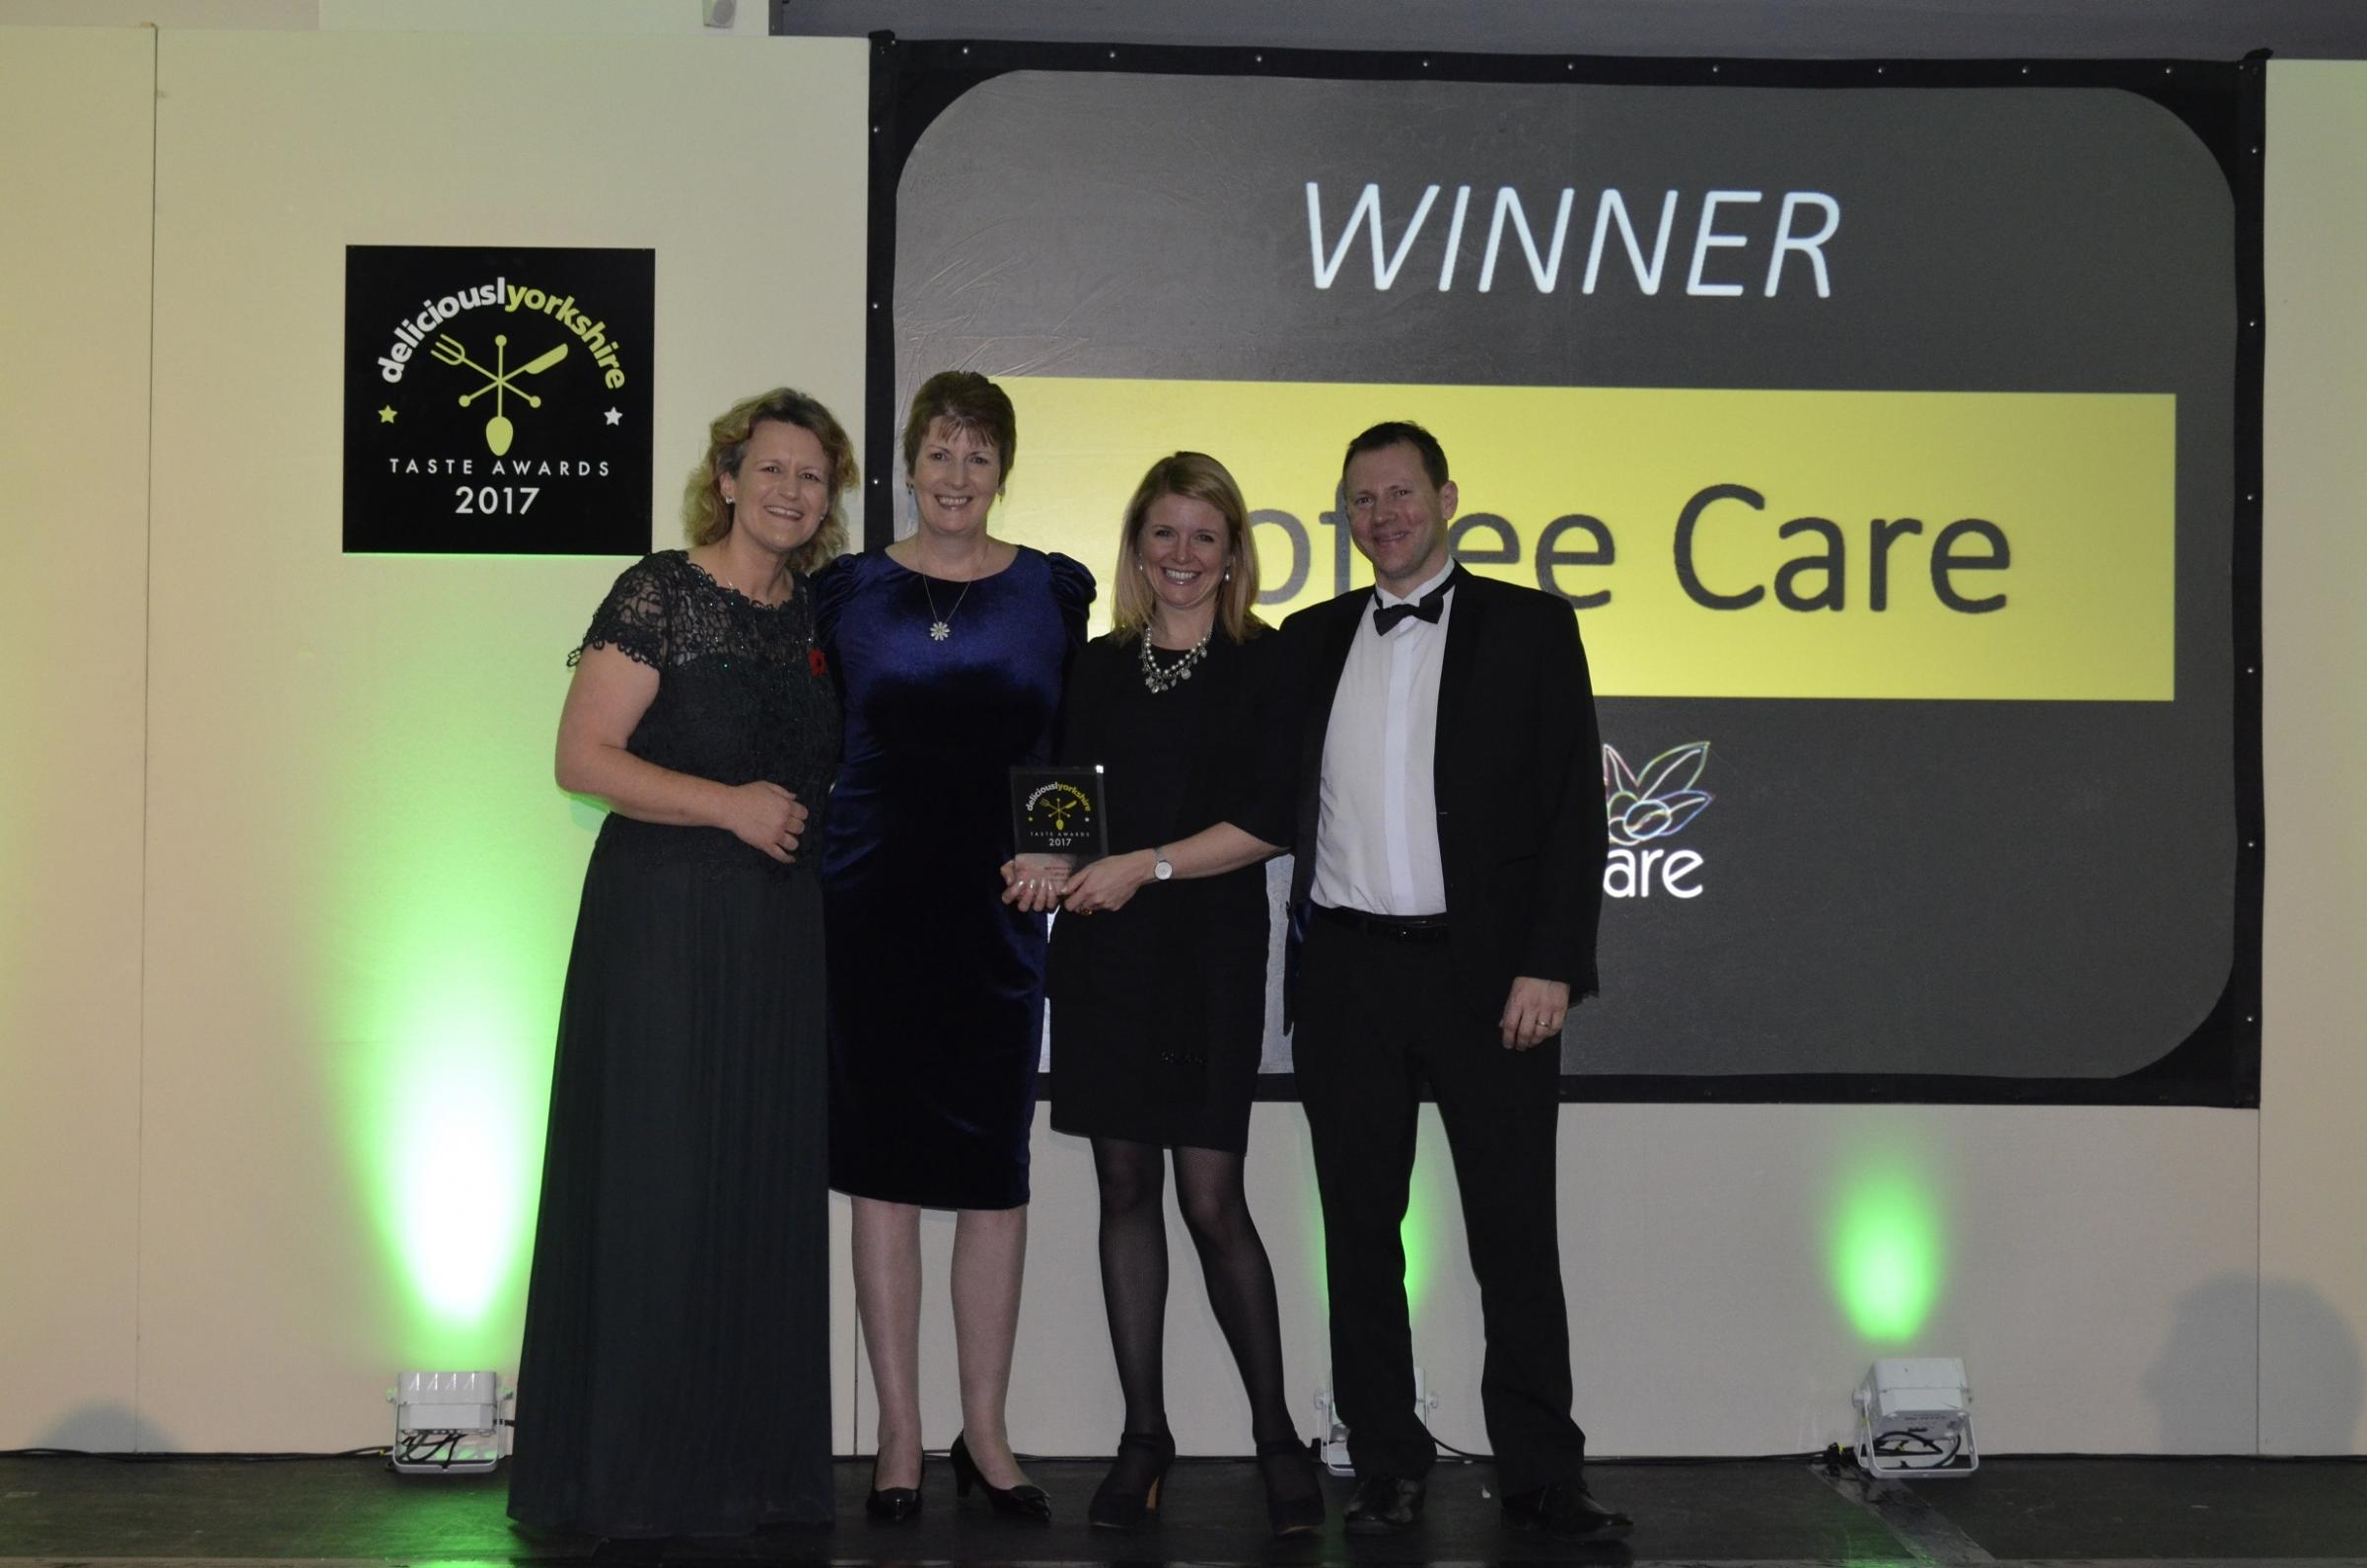 Skipton firm Coffee Care receive an award for Best Yorkshire Beverage and the Deliciously Yorkshire's Taste Awards.